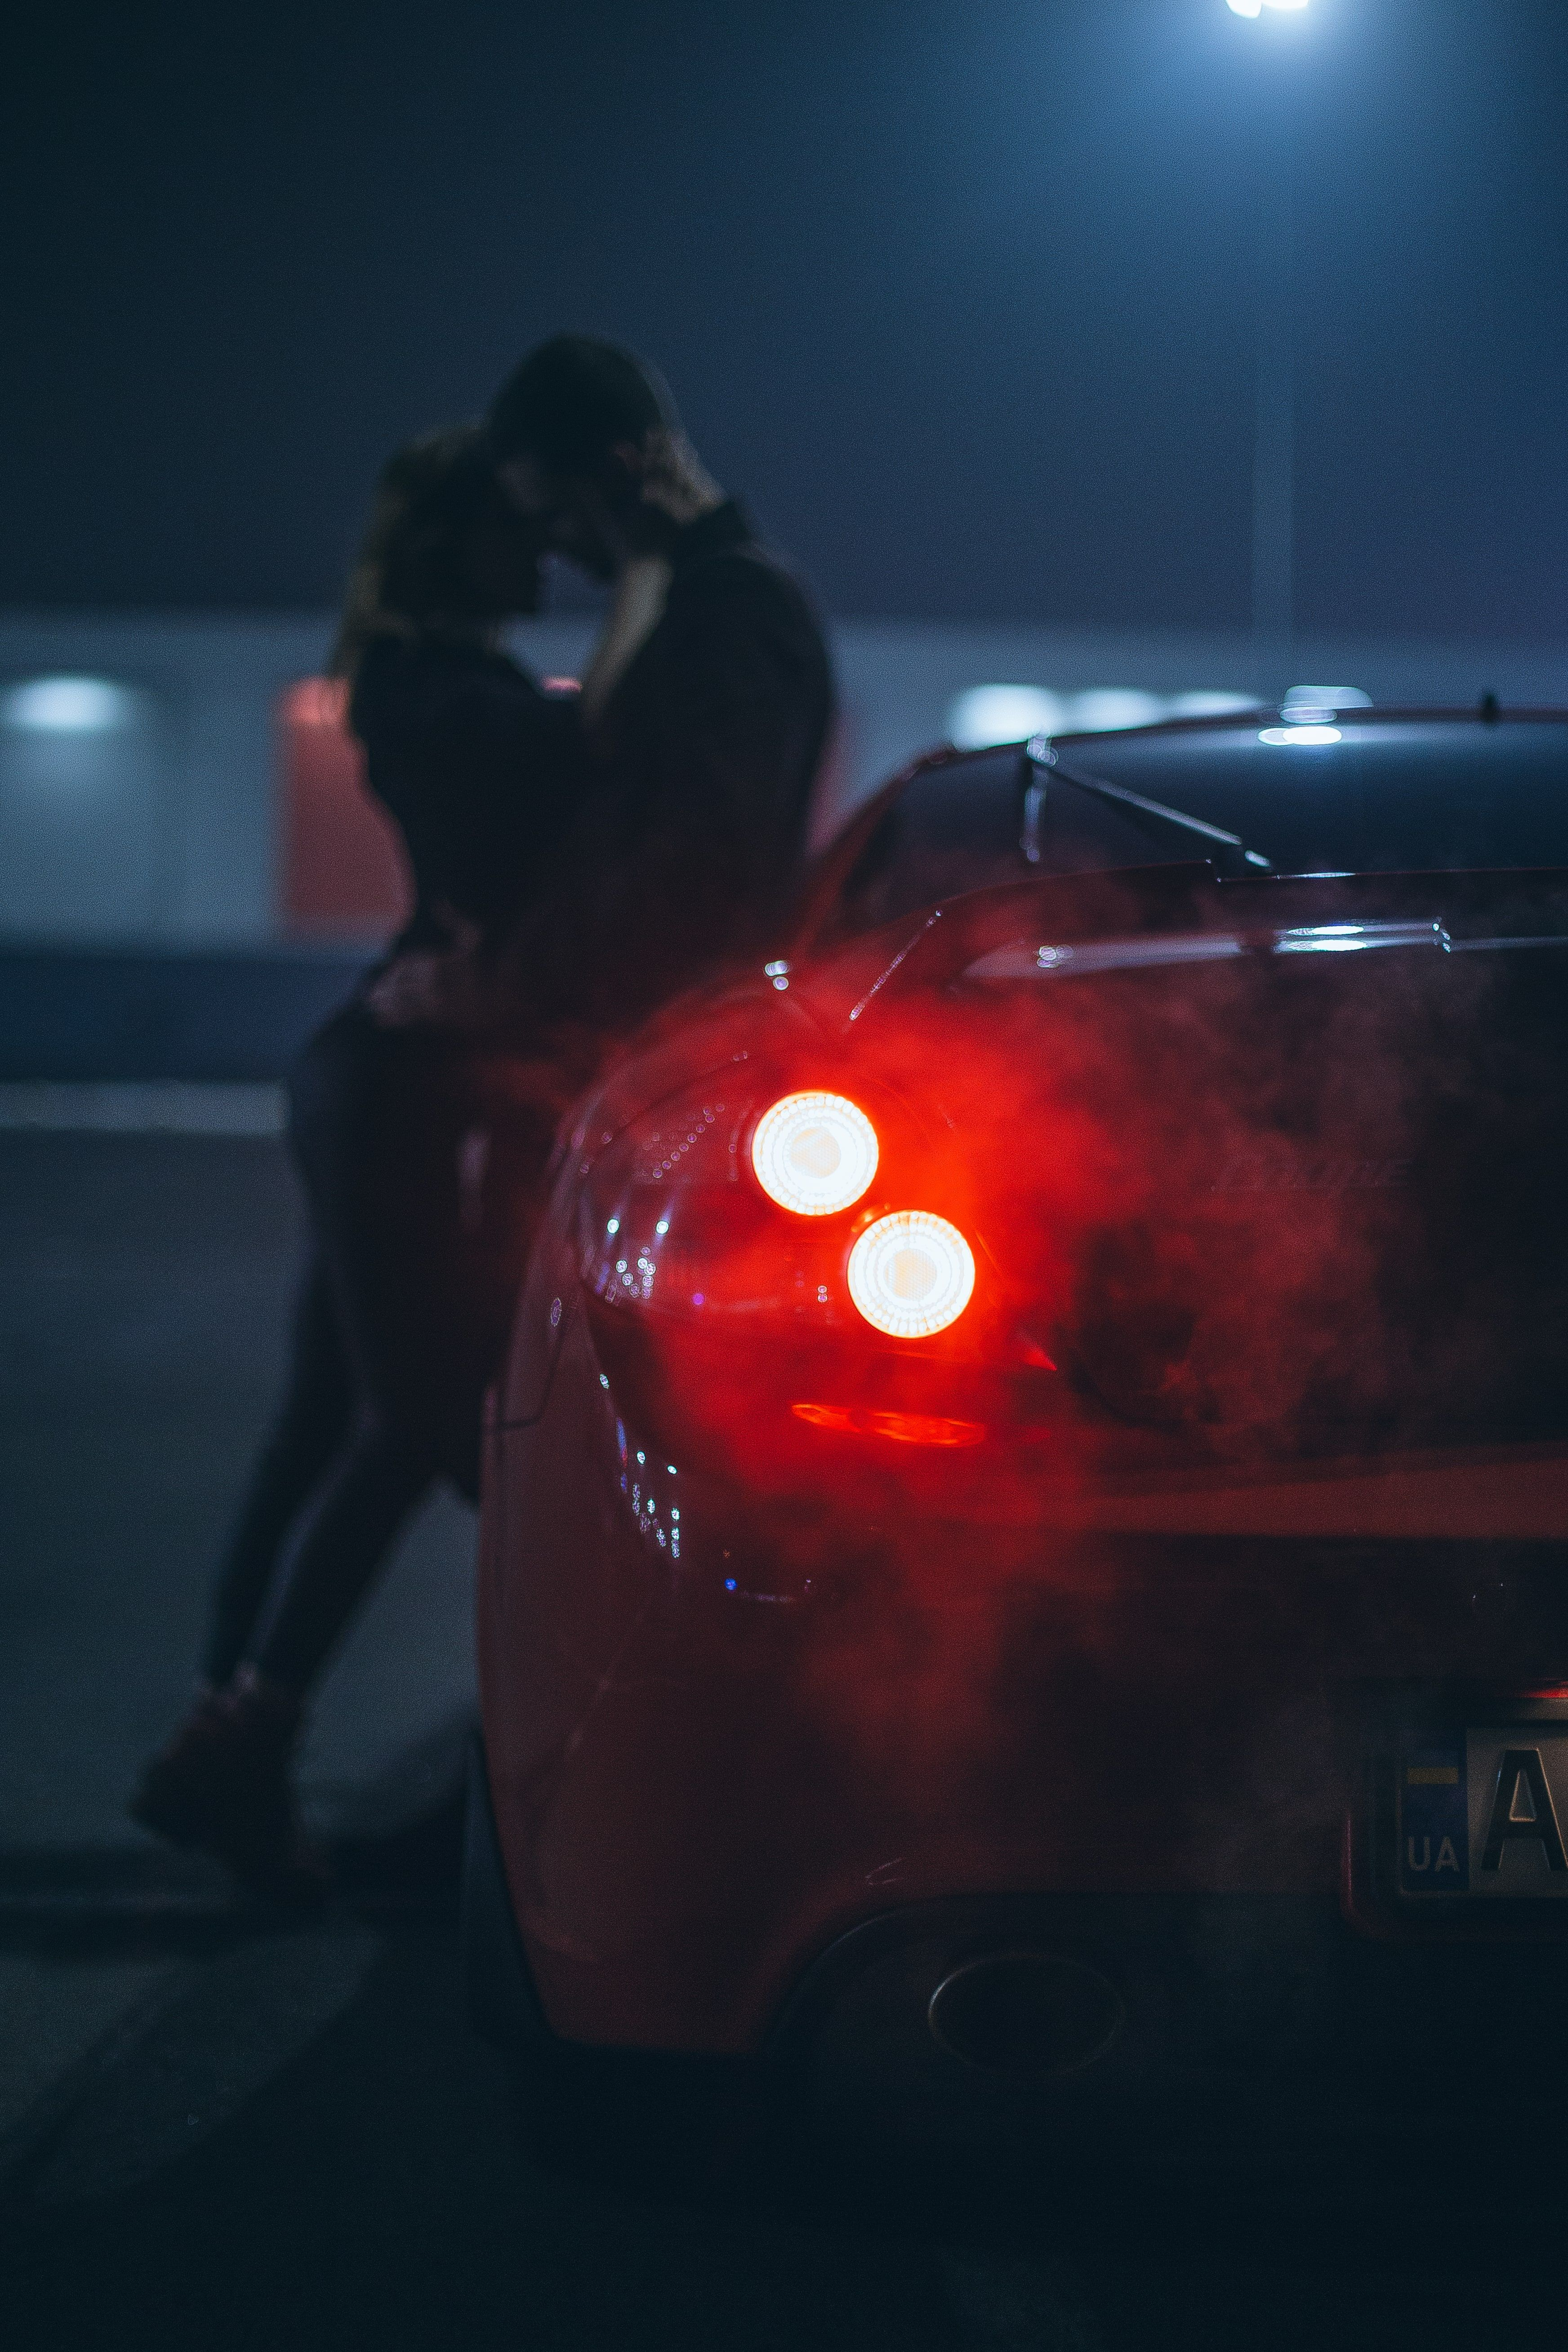 Night Lights Love Story Couple Girl Man Car Red Neon Photography Winter Winter Photography Night Photography Romantic Couples